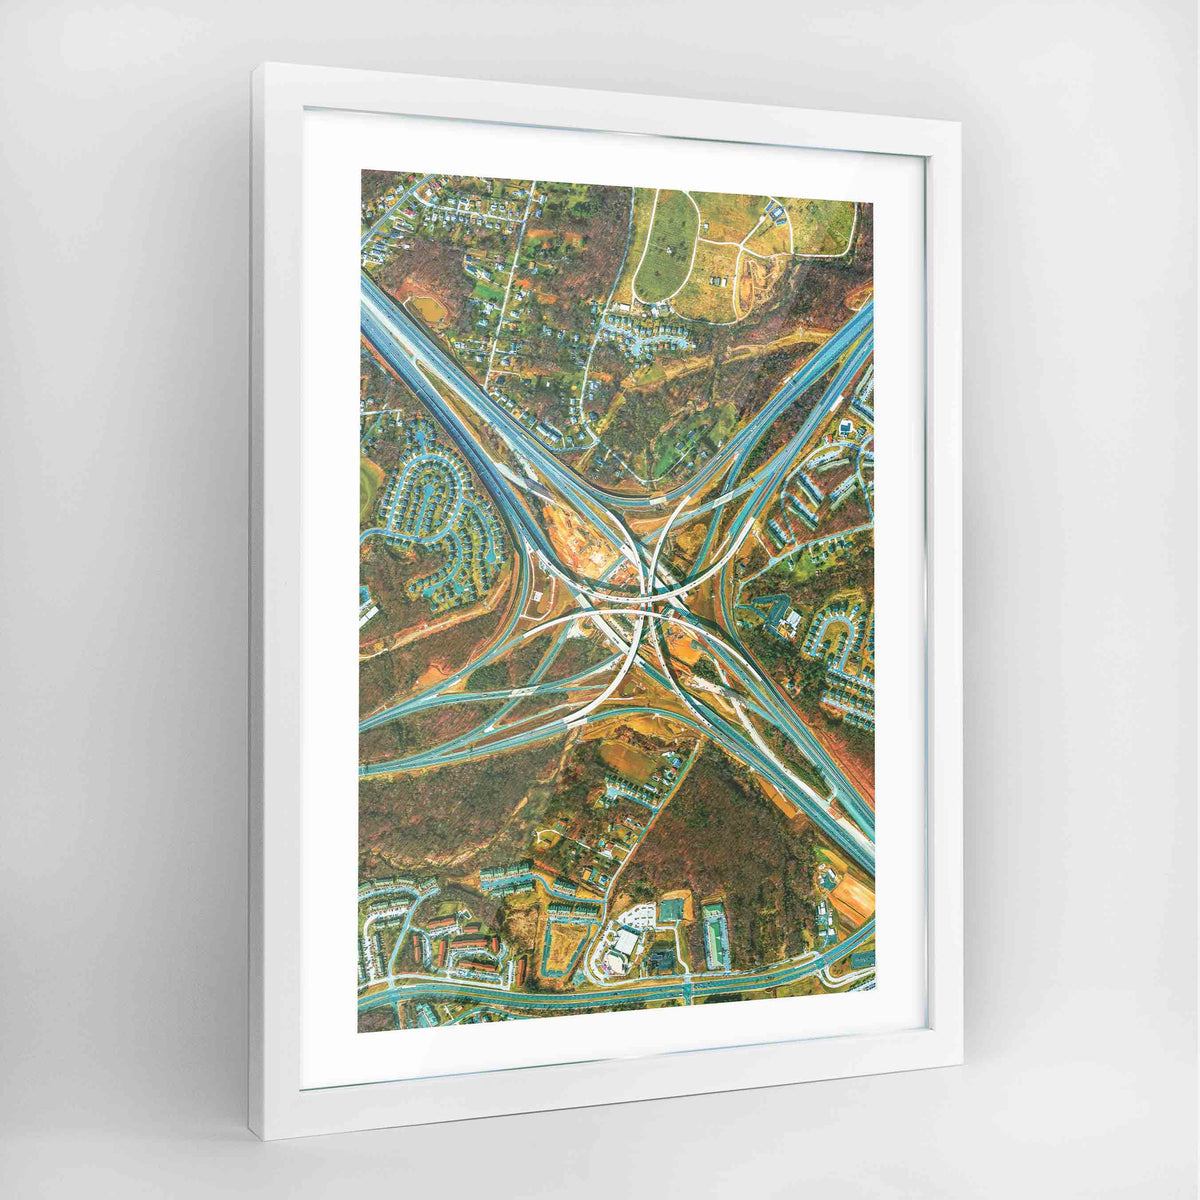 Maryland Interchange Earth Photography Art Print - Framed